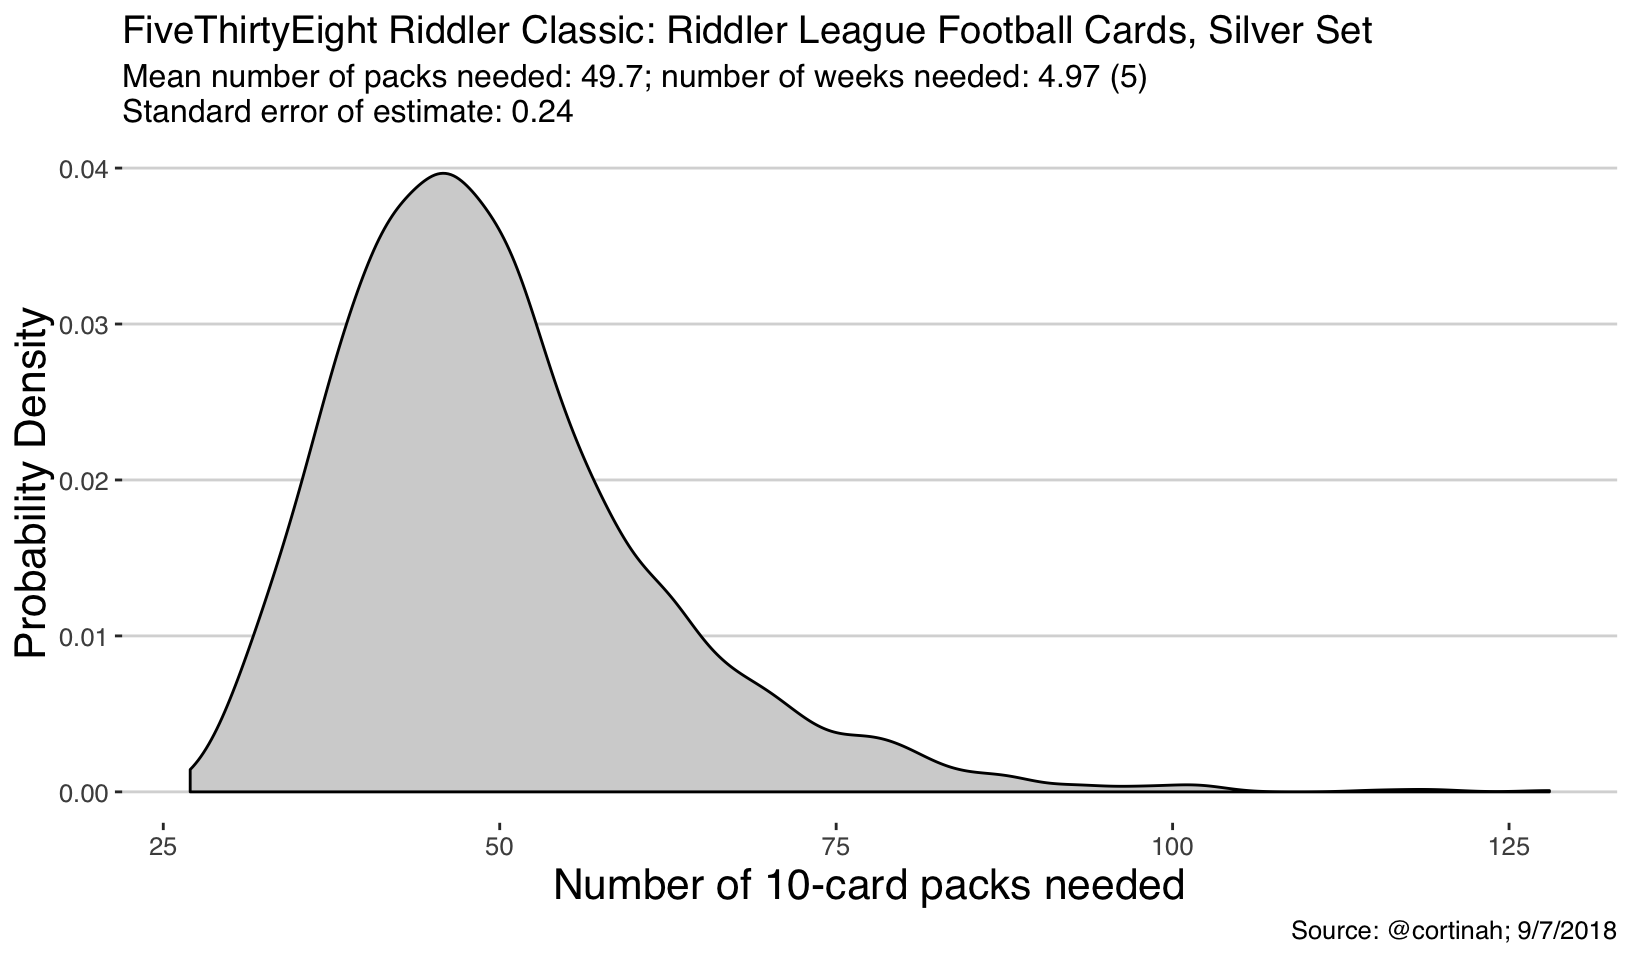 Riddler Classic: Riddler League Football Cards